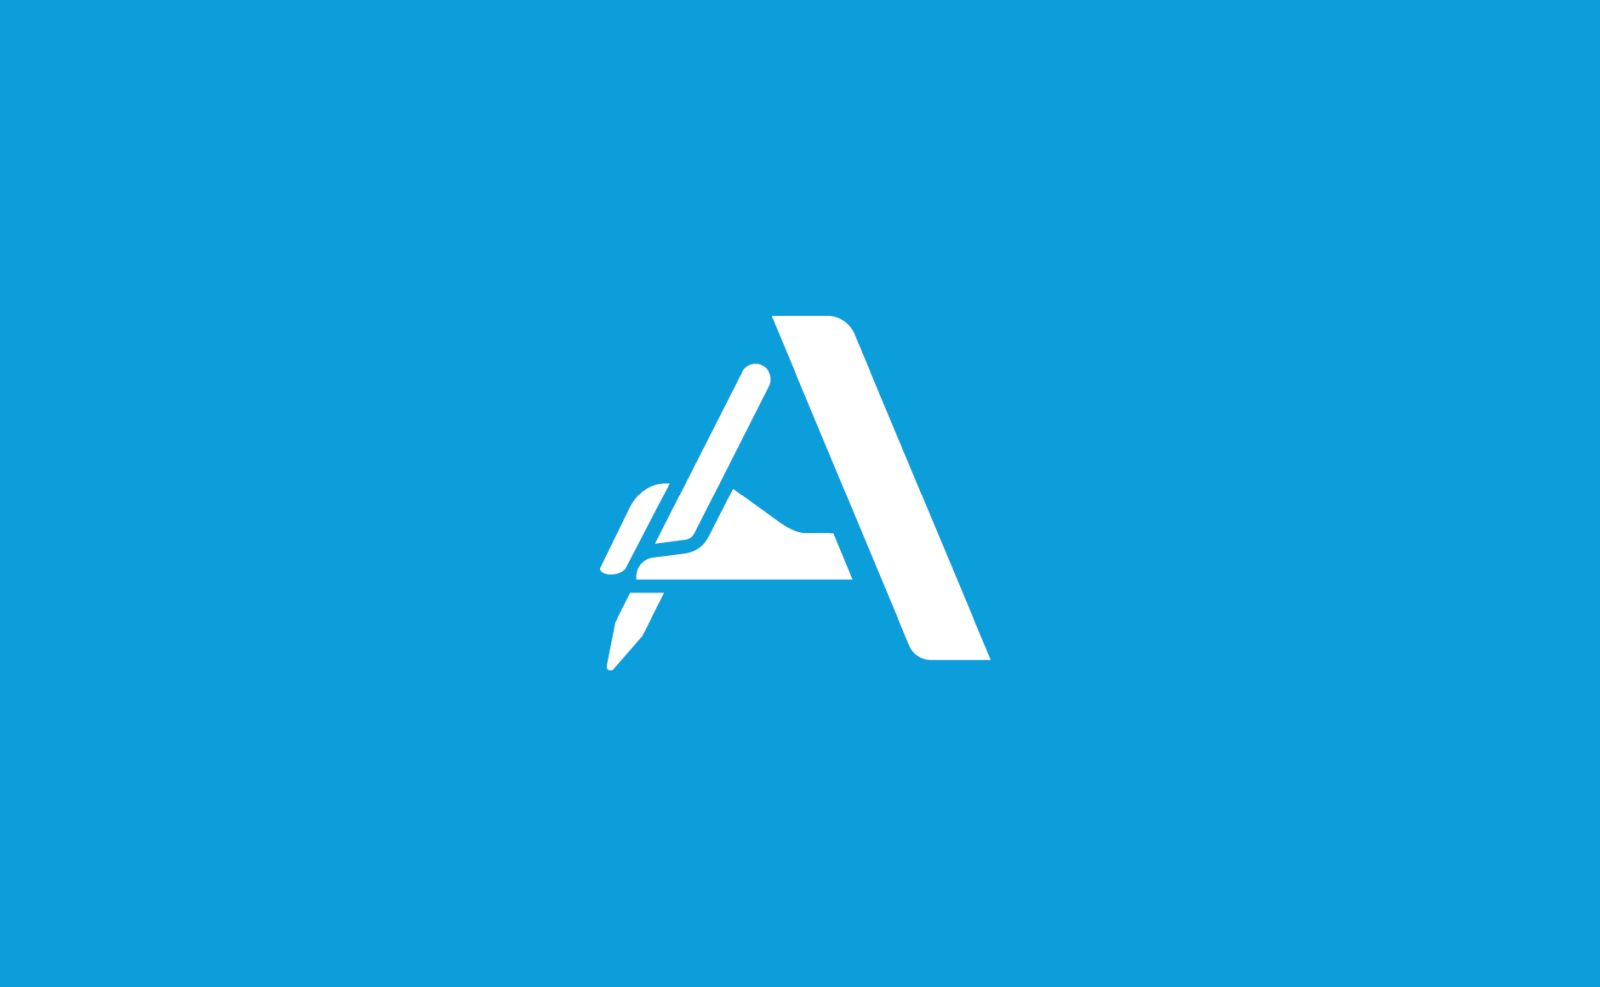 branding and logo design process of anacours